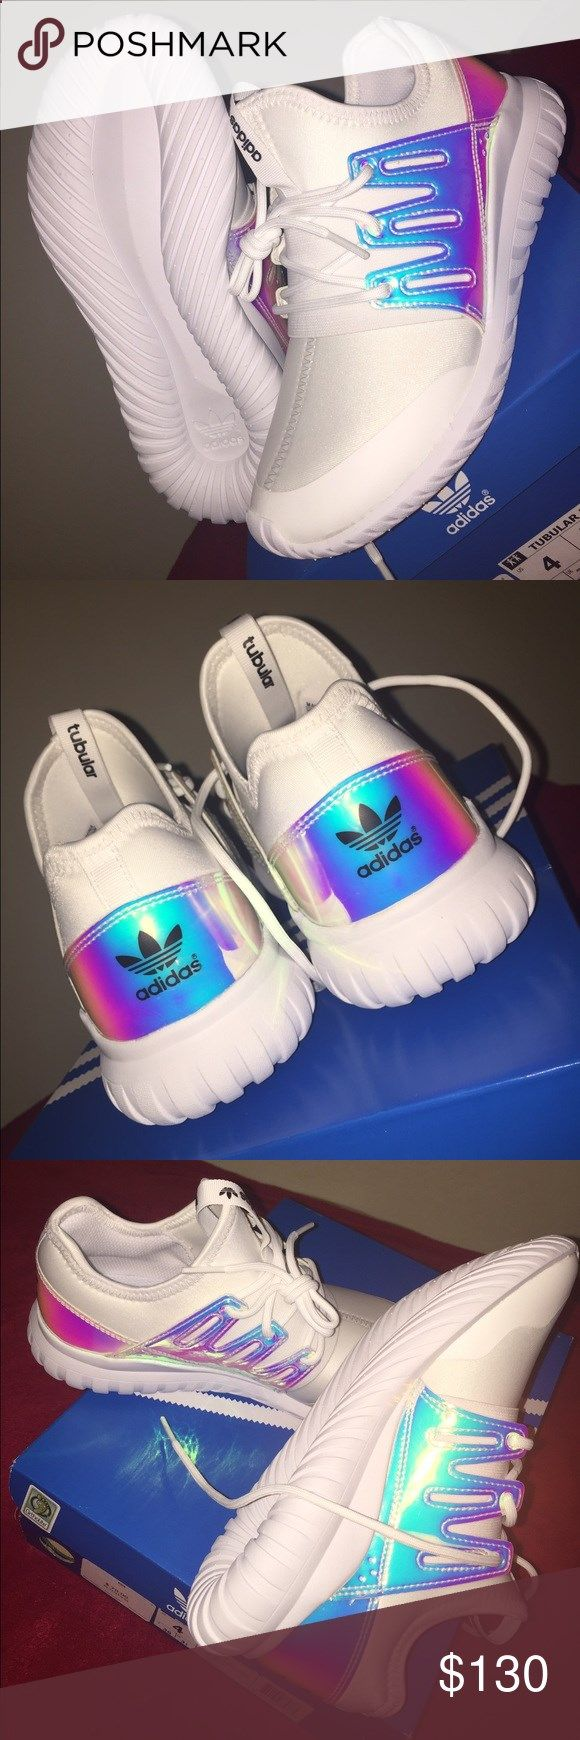 2451fb8d80f3 ... new arrivals adidas tubular radial k white and holographic adidas  tubular. brand new never worn